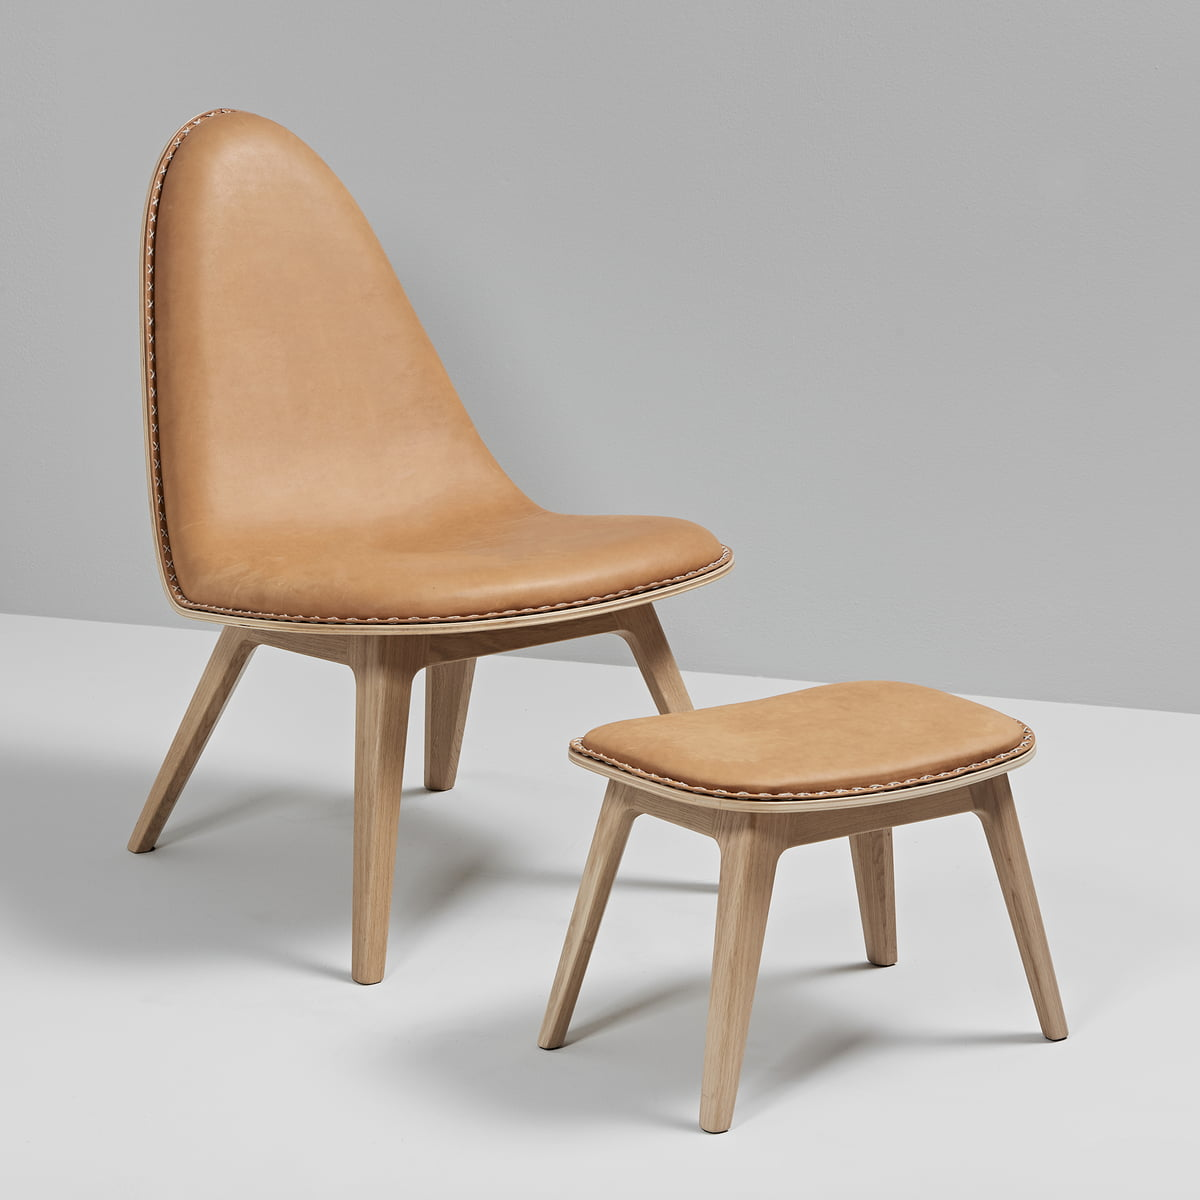 Nordic Lounge Chair With Foot Stool By Sack It